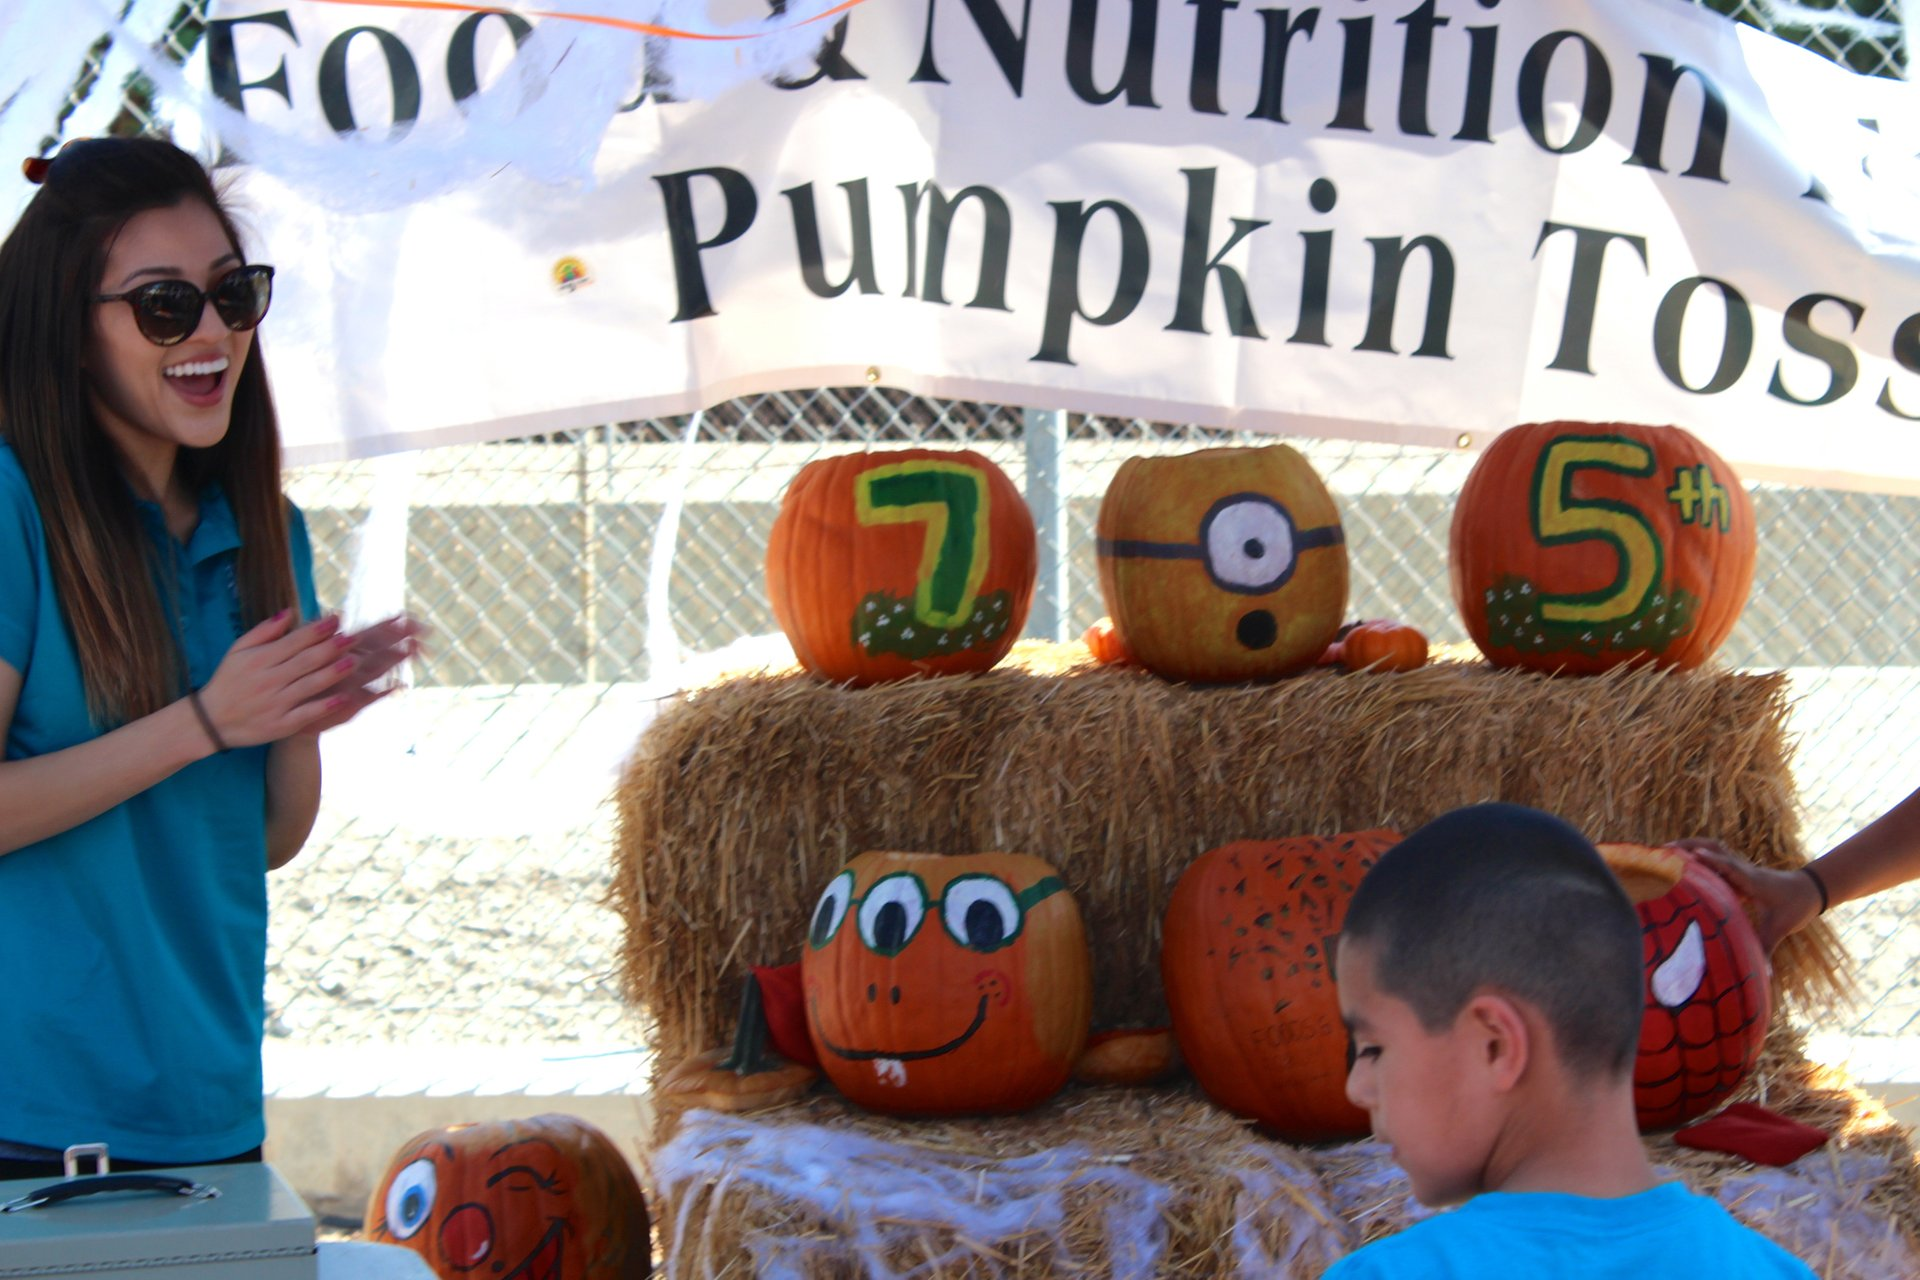 Best time for Cal Poly Pomona Pumpkin Festival in Los Angeles 2020